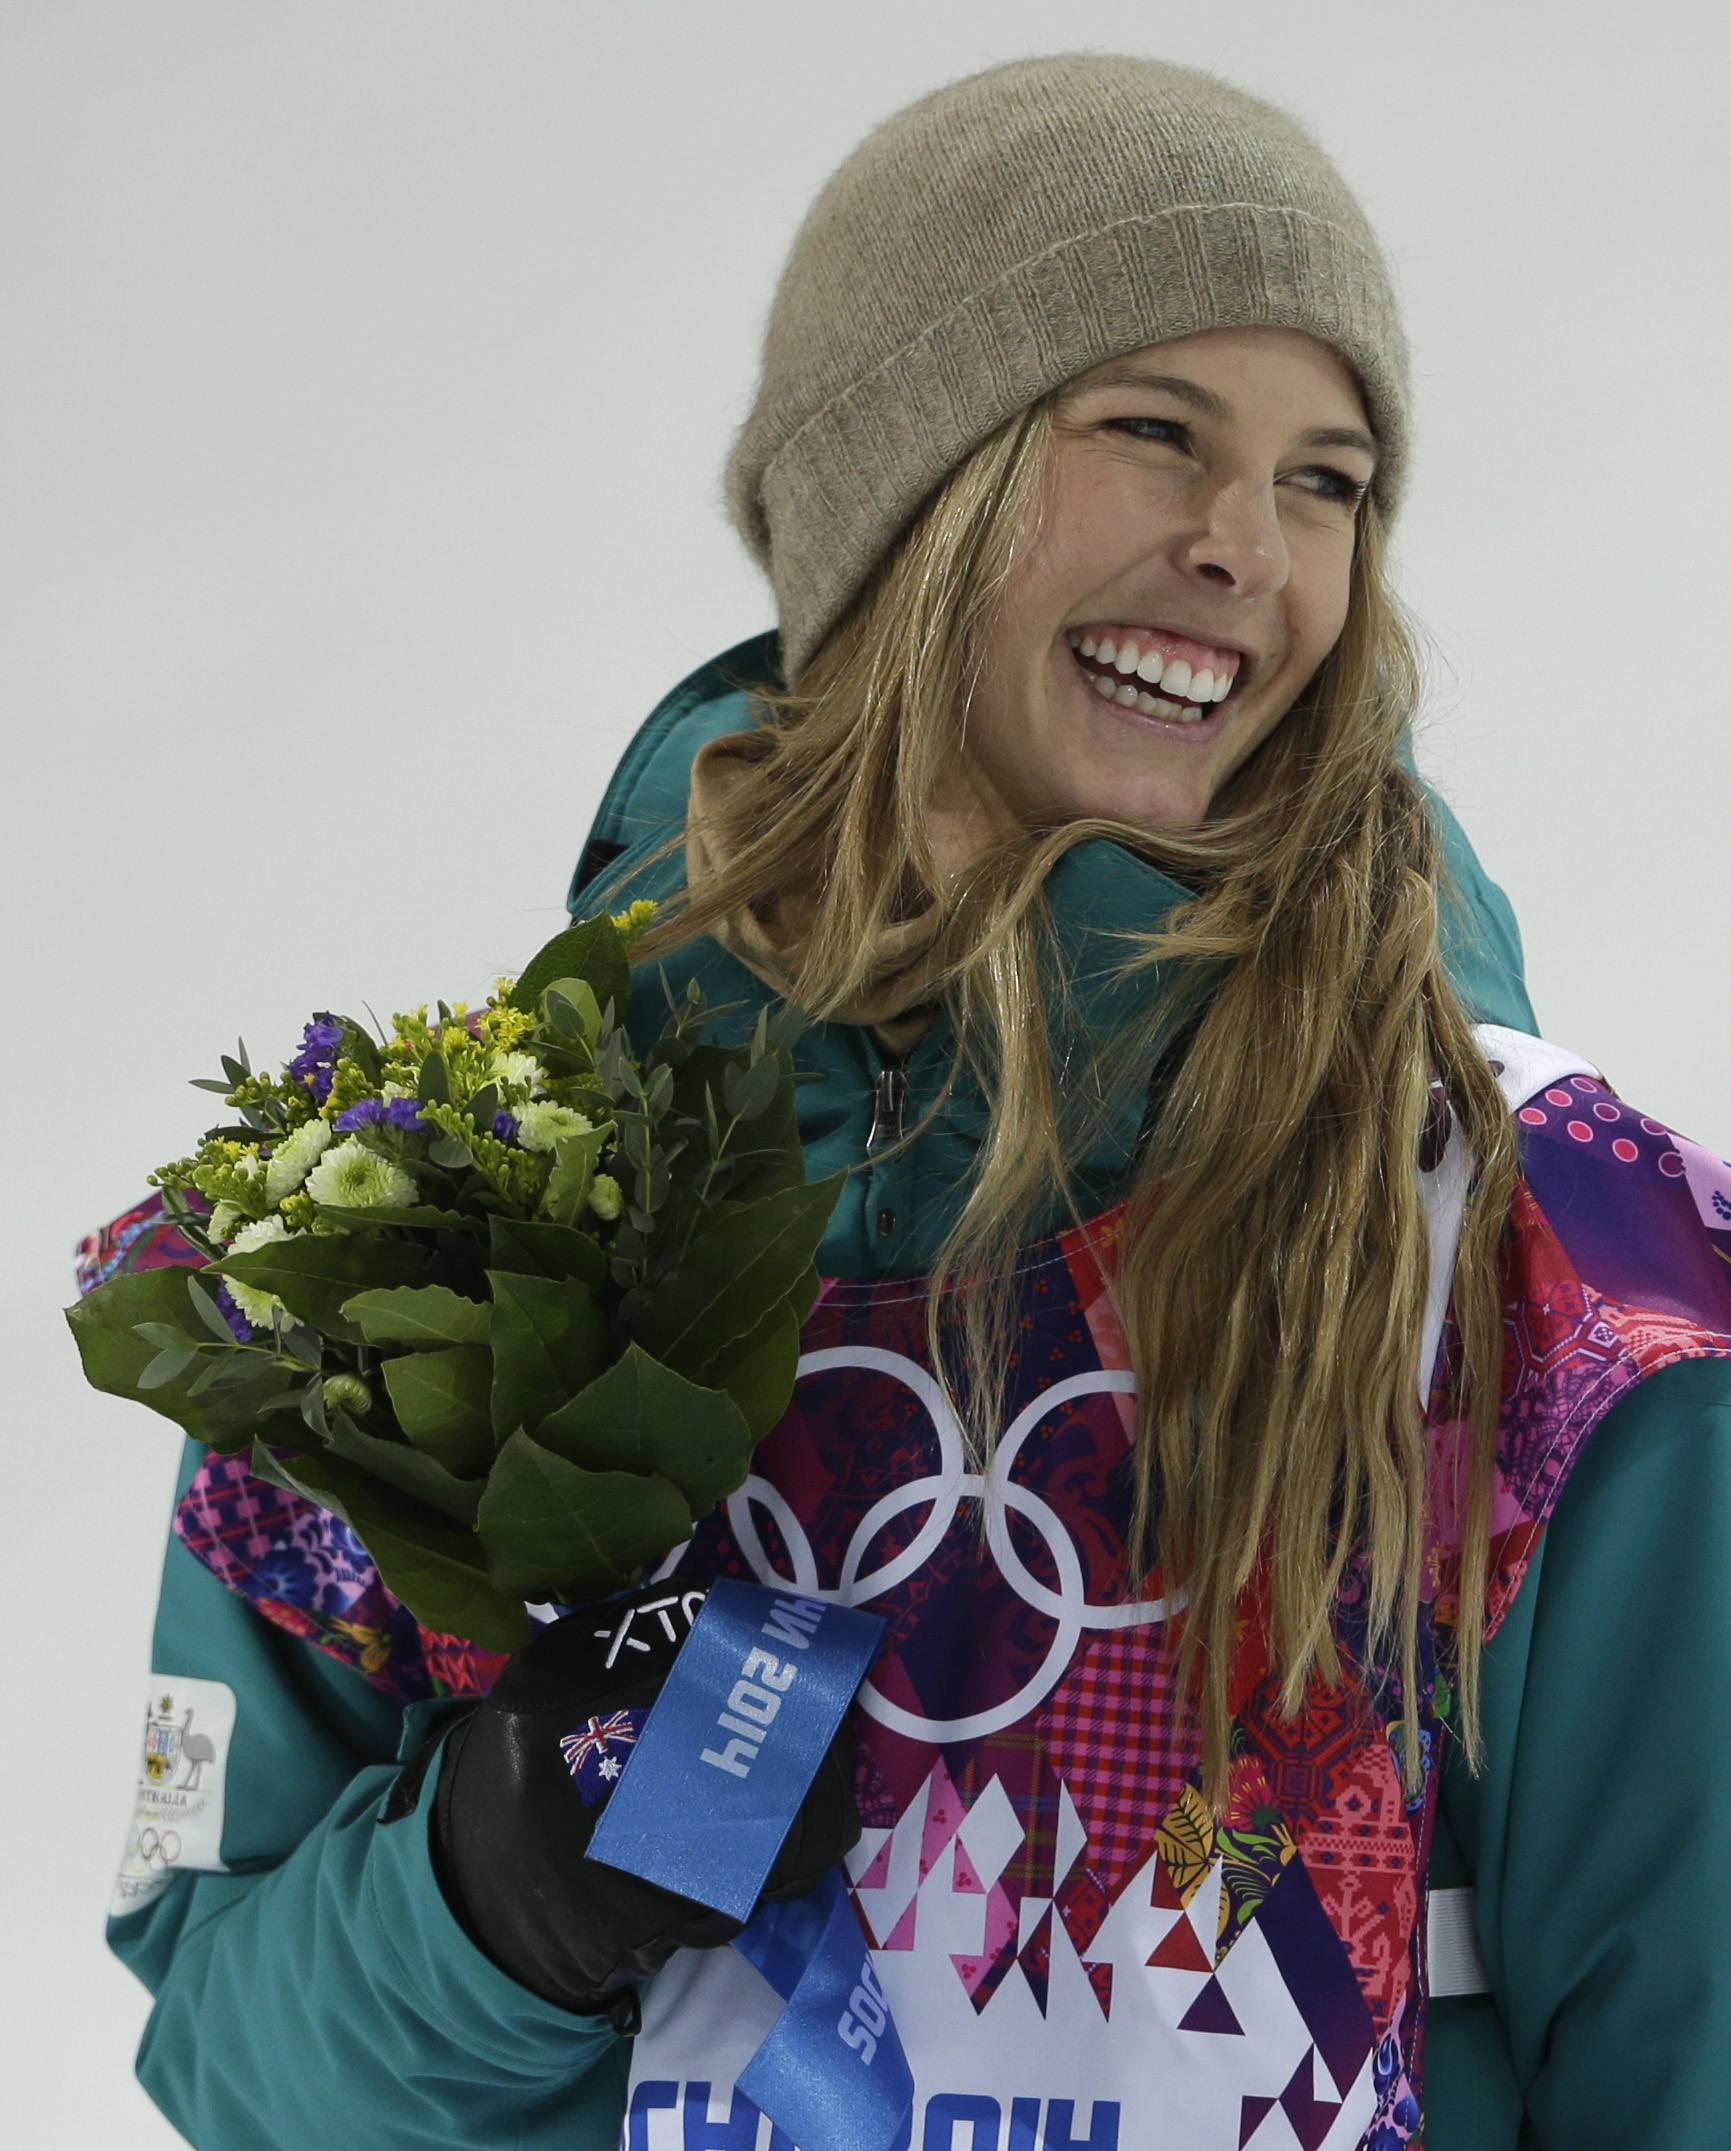 Australia's Torah Bright celebrates after clinching the silver medal in the women's snowboard halfpipe.